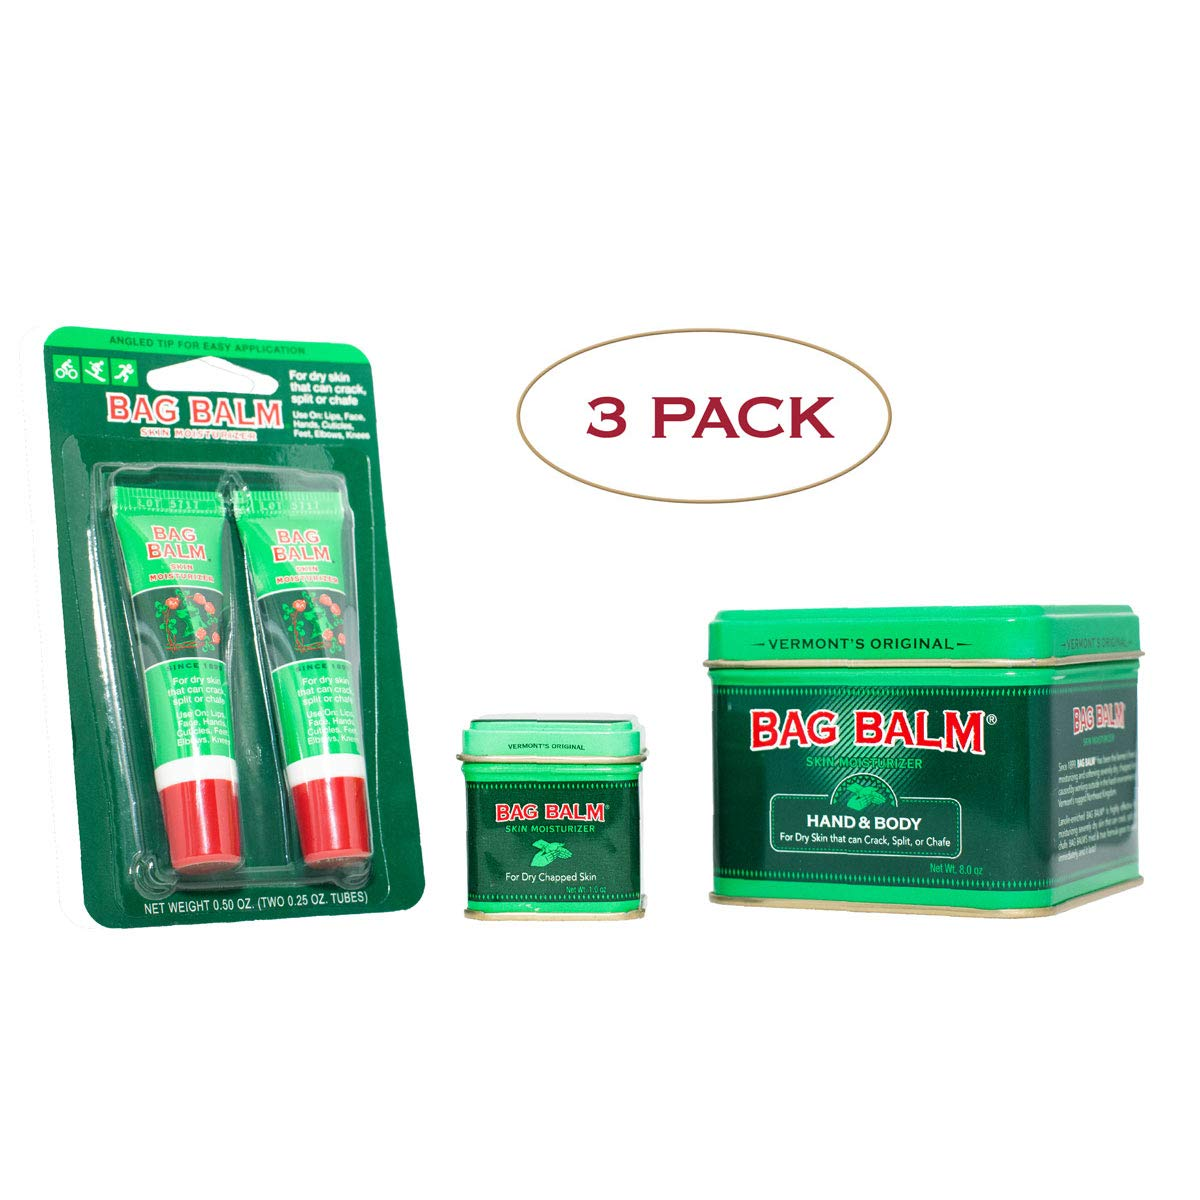 Vermont's Original Bag Balm 3 Pack Bundle for Dry, Cracked Skin, Hands, Lips, 8 Ounce Tin, 1 Ounce Tin, 2 Pack Lip Balm On-The-Go Tubes by Bag Balm